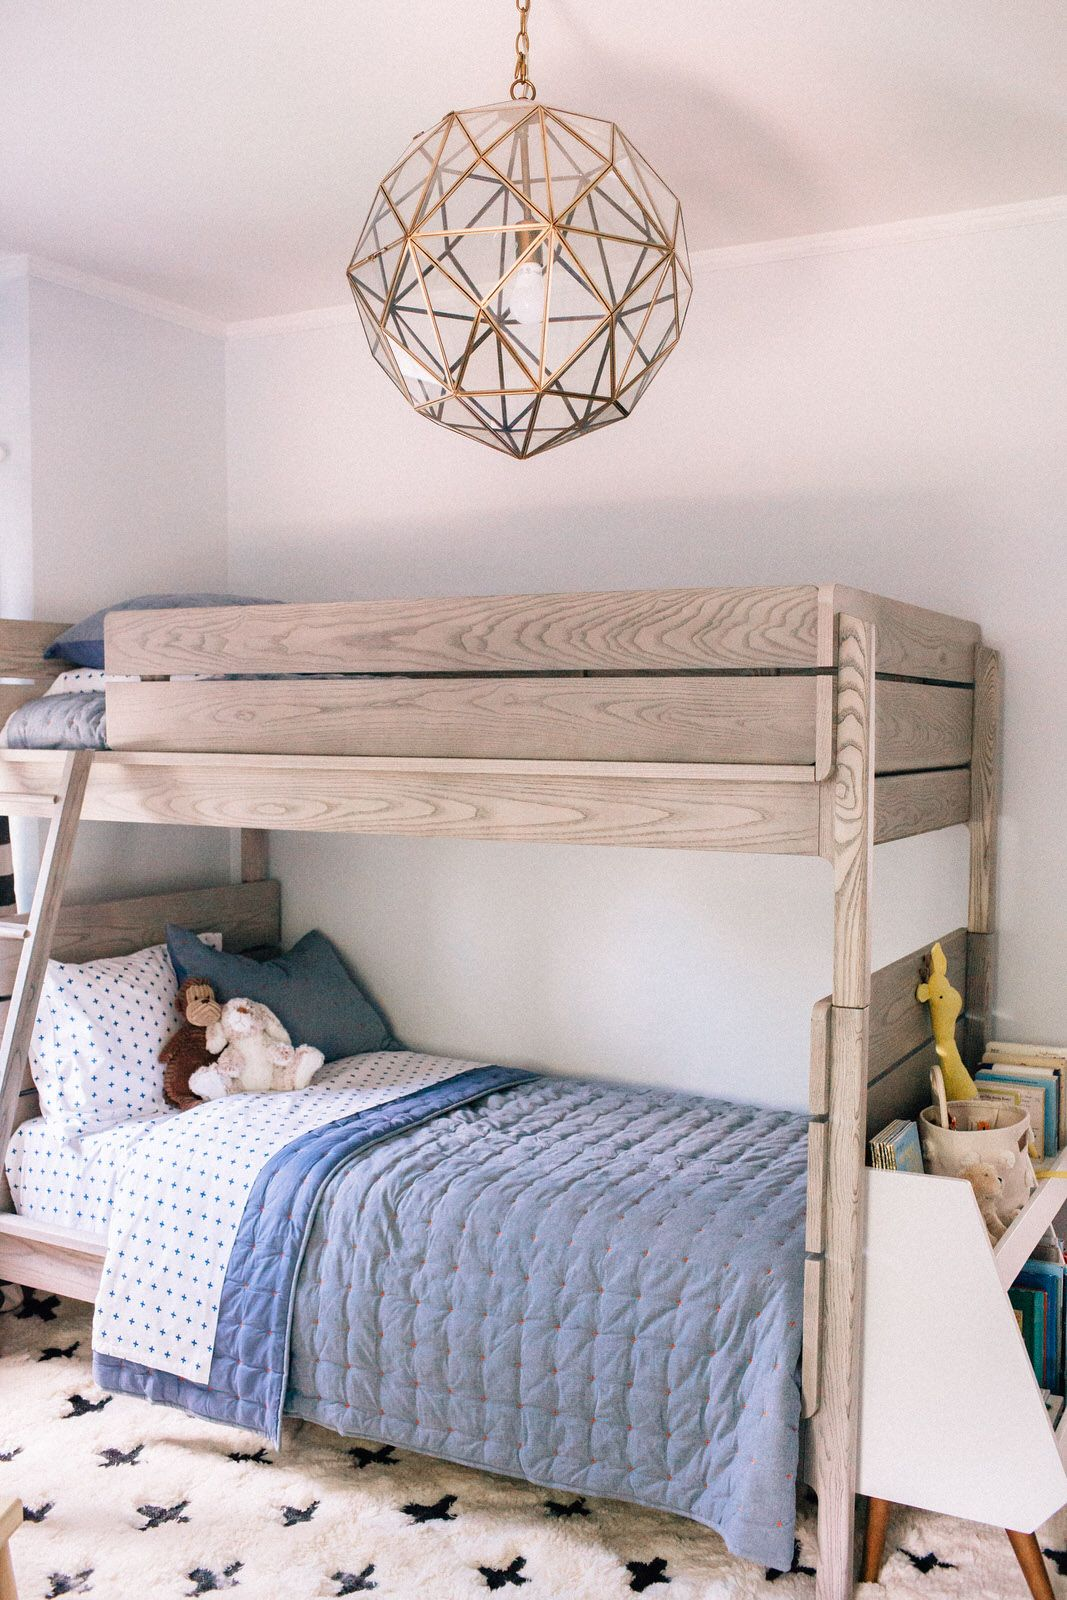 crate and kids beds on charlie s bedroom makeover with crate and kids hello adams family bunk bed designs bunk beds modern bunk beds bunk bed designs bunk beds